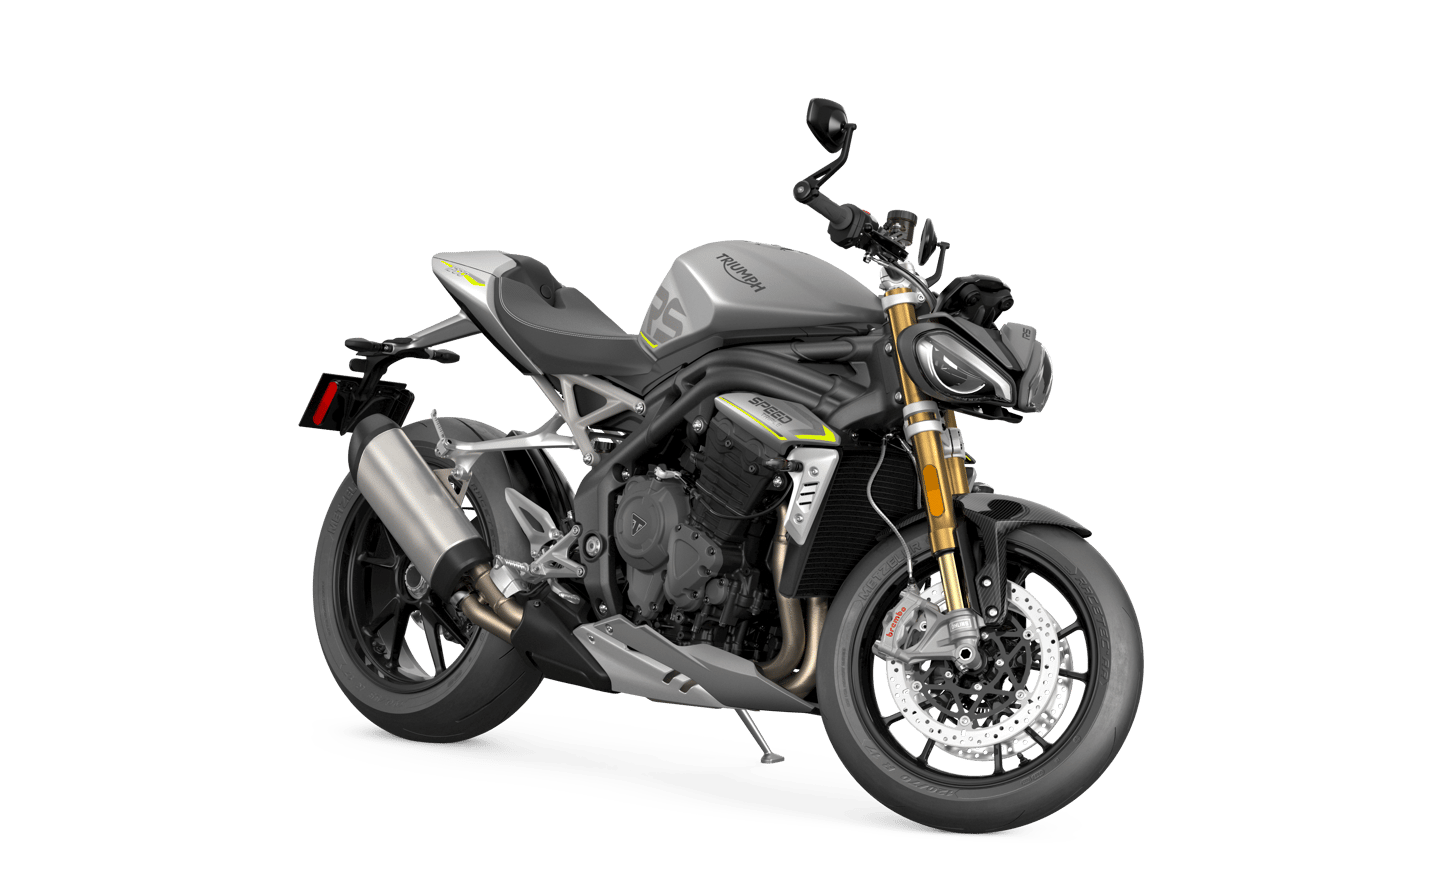 The 2021 Triumph Speed Triple RS remains instantly recognizable